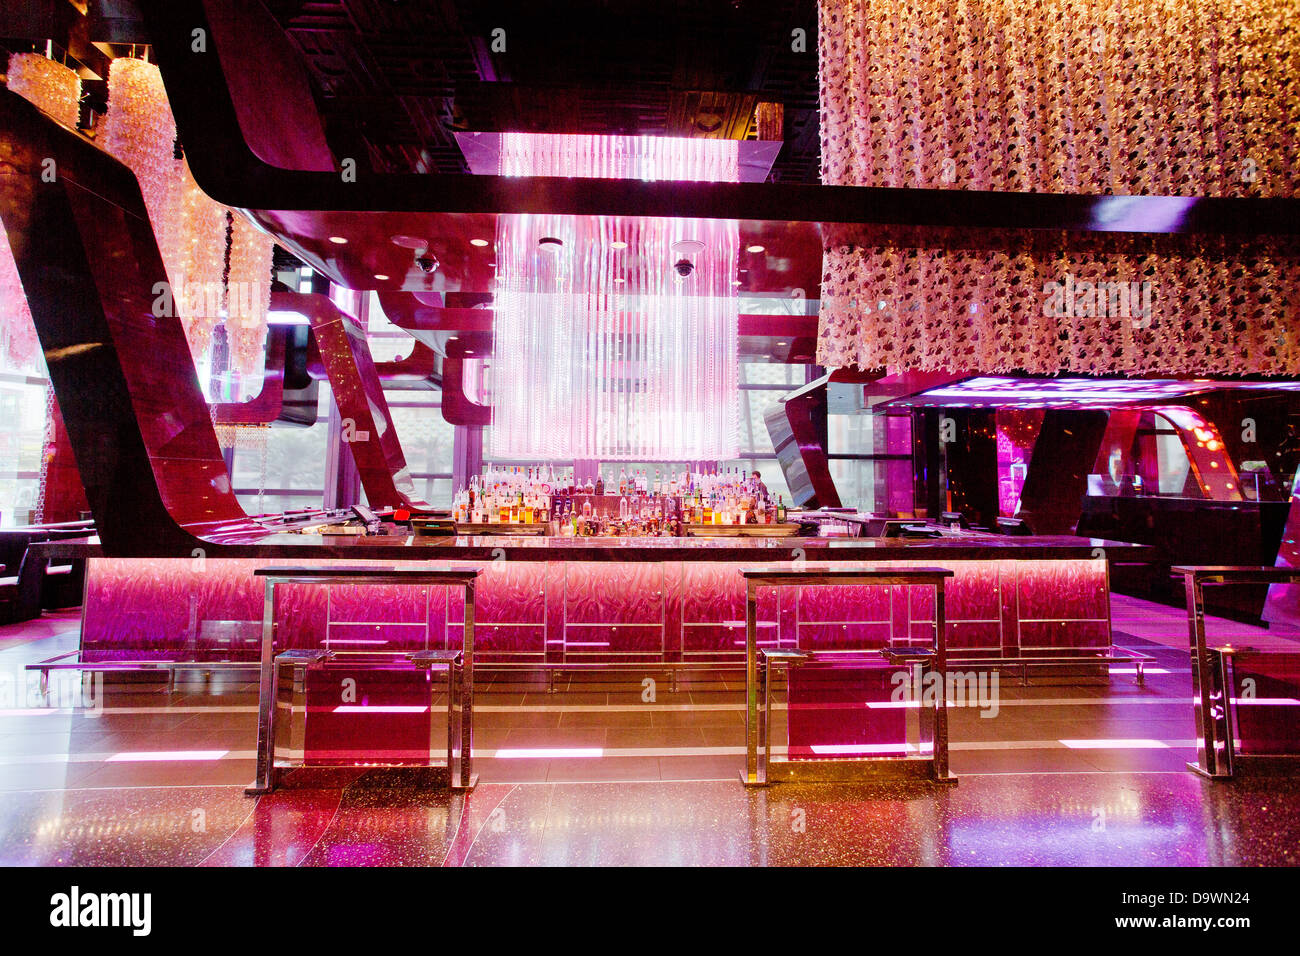 cosmopolitan of las vegas luxury resort casino and hotel interior